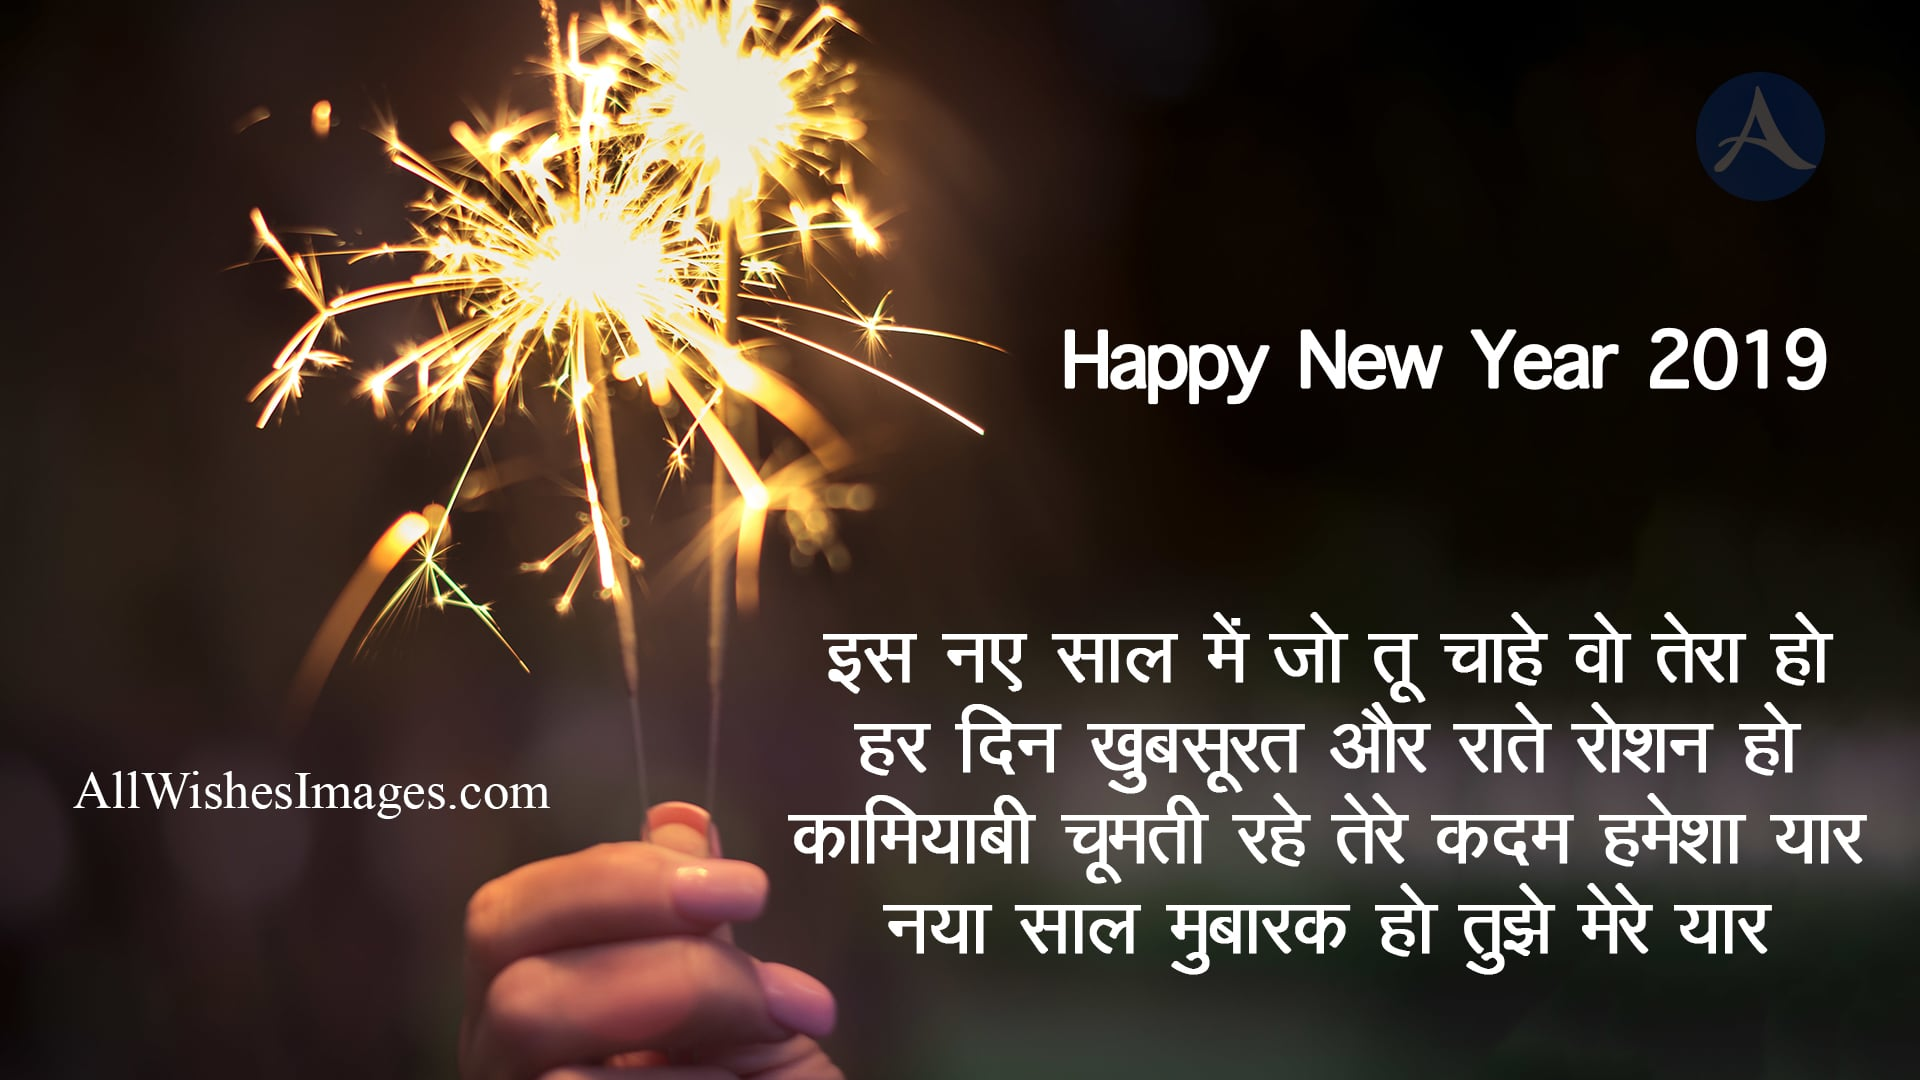 Happy New Year Hindi Shayari Images 2019 - All Wishes Images